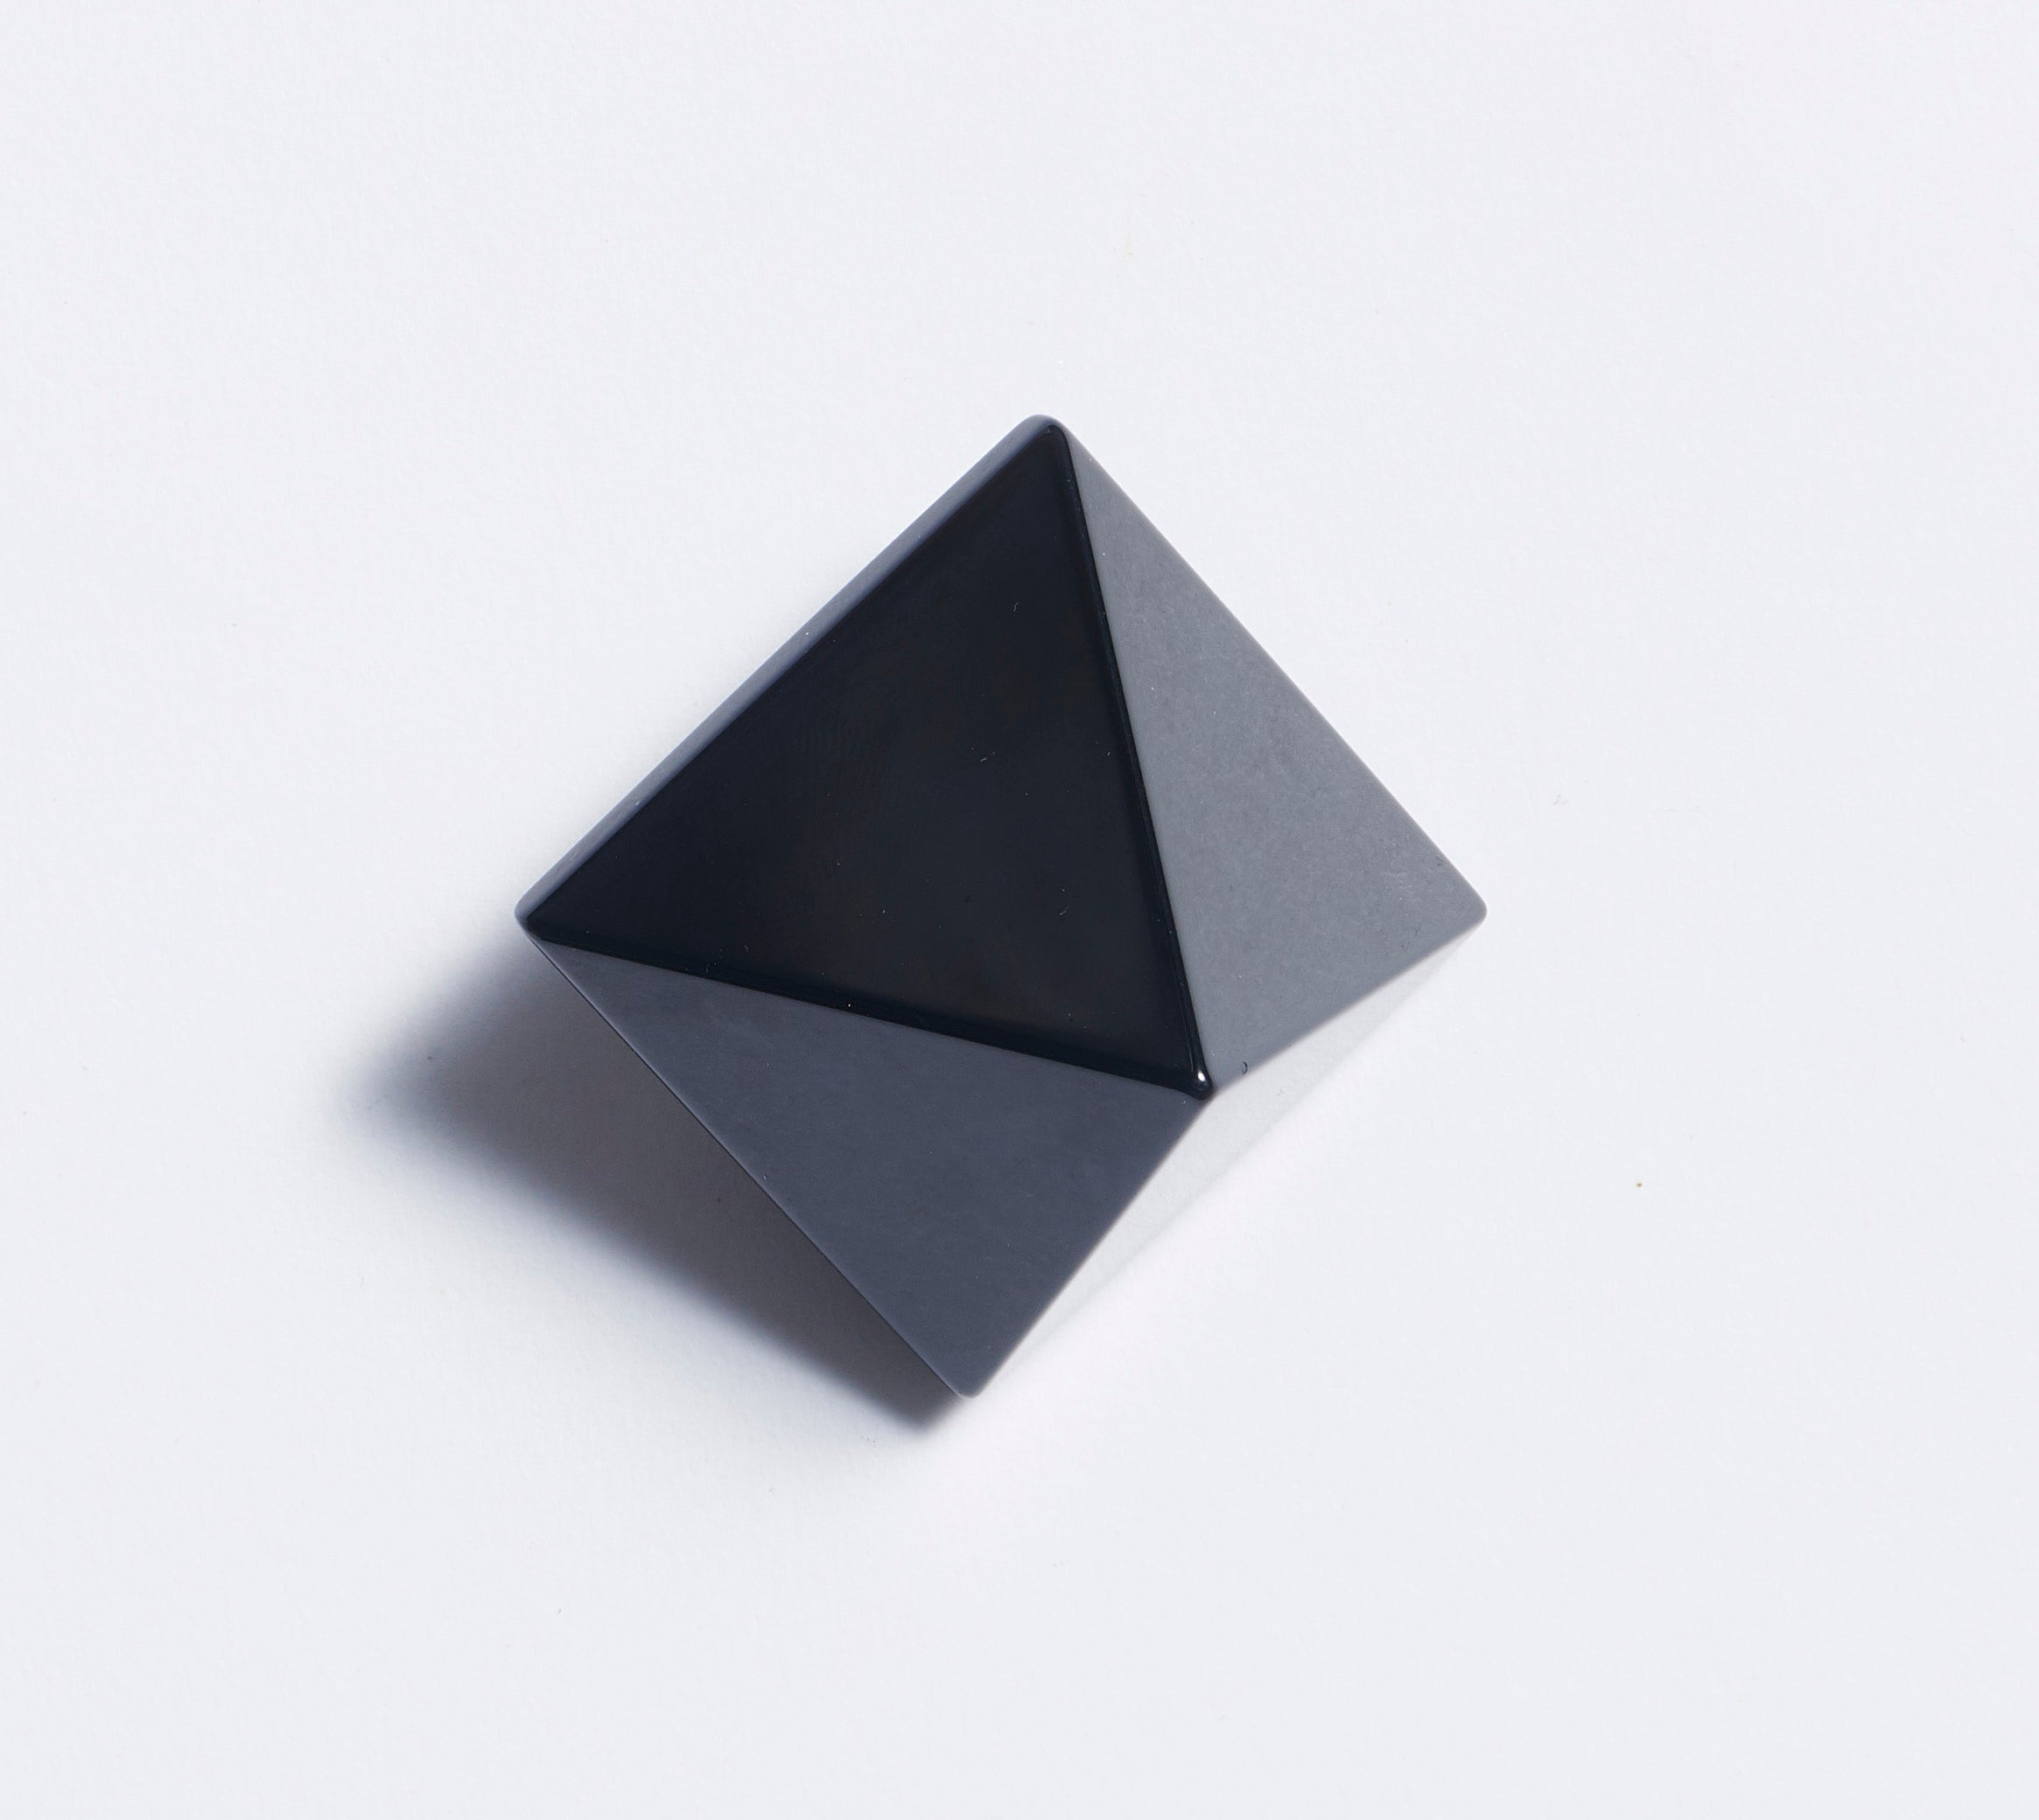 Black Obsidian Pyramid Crystal